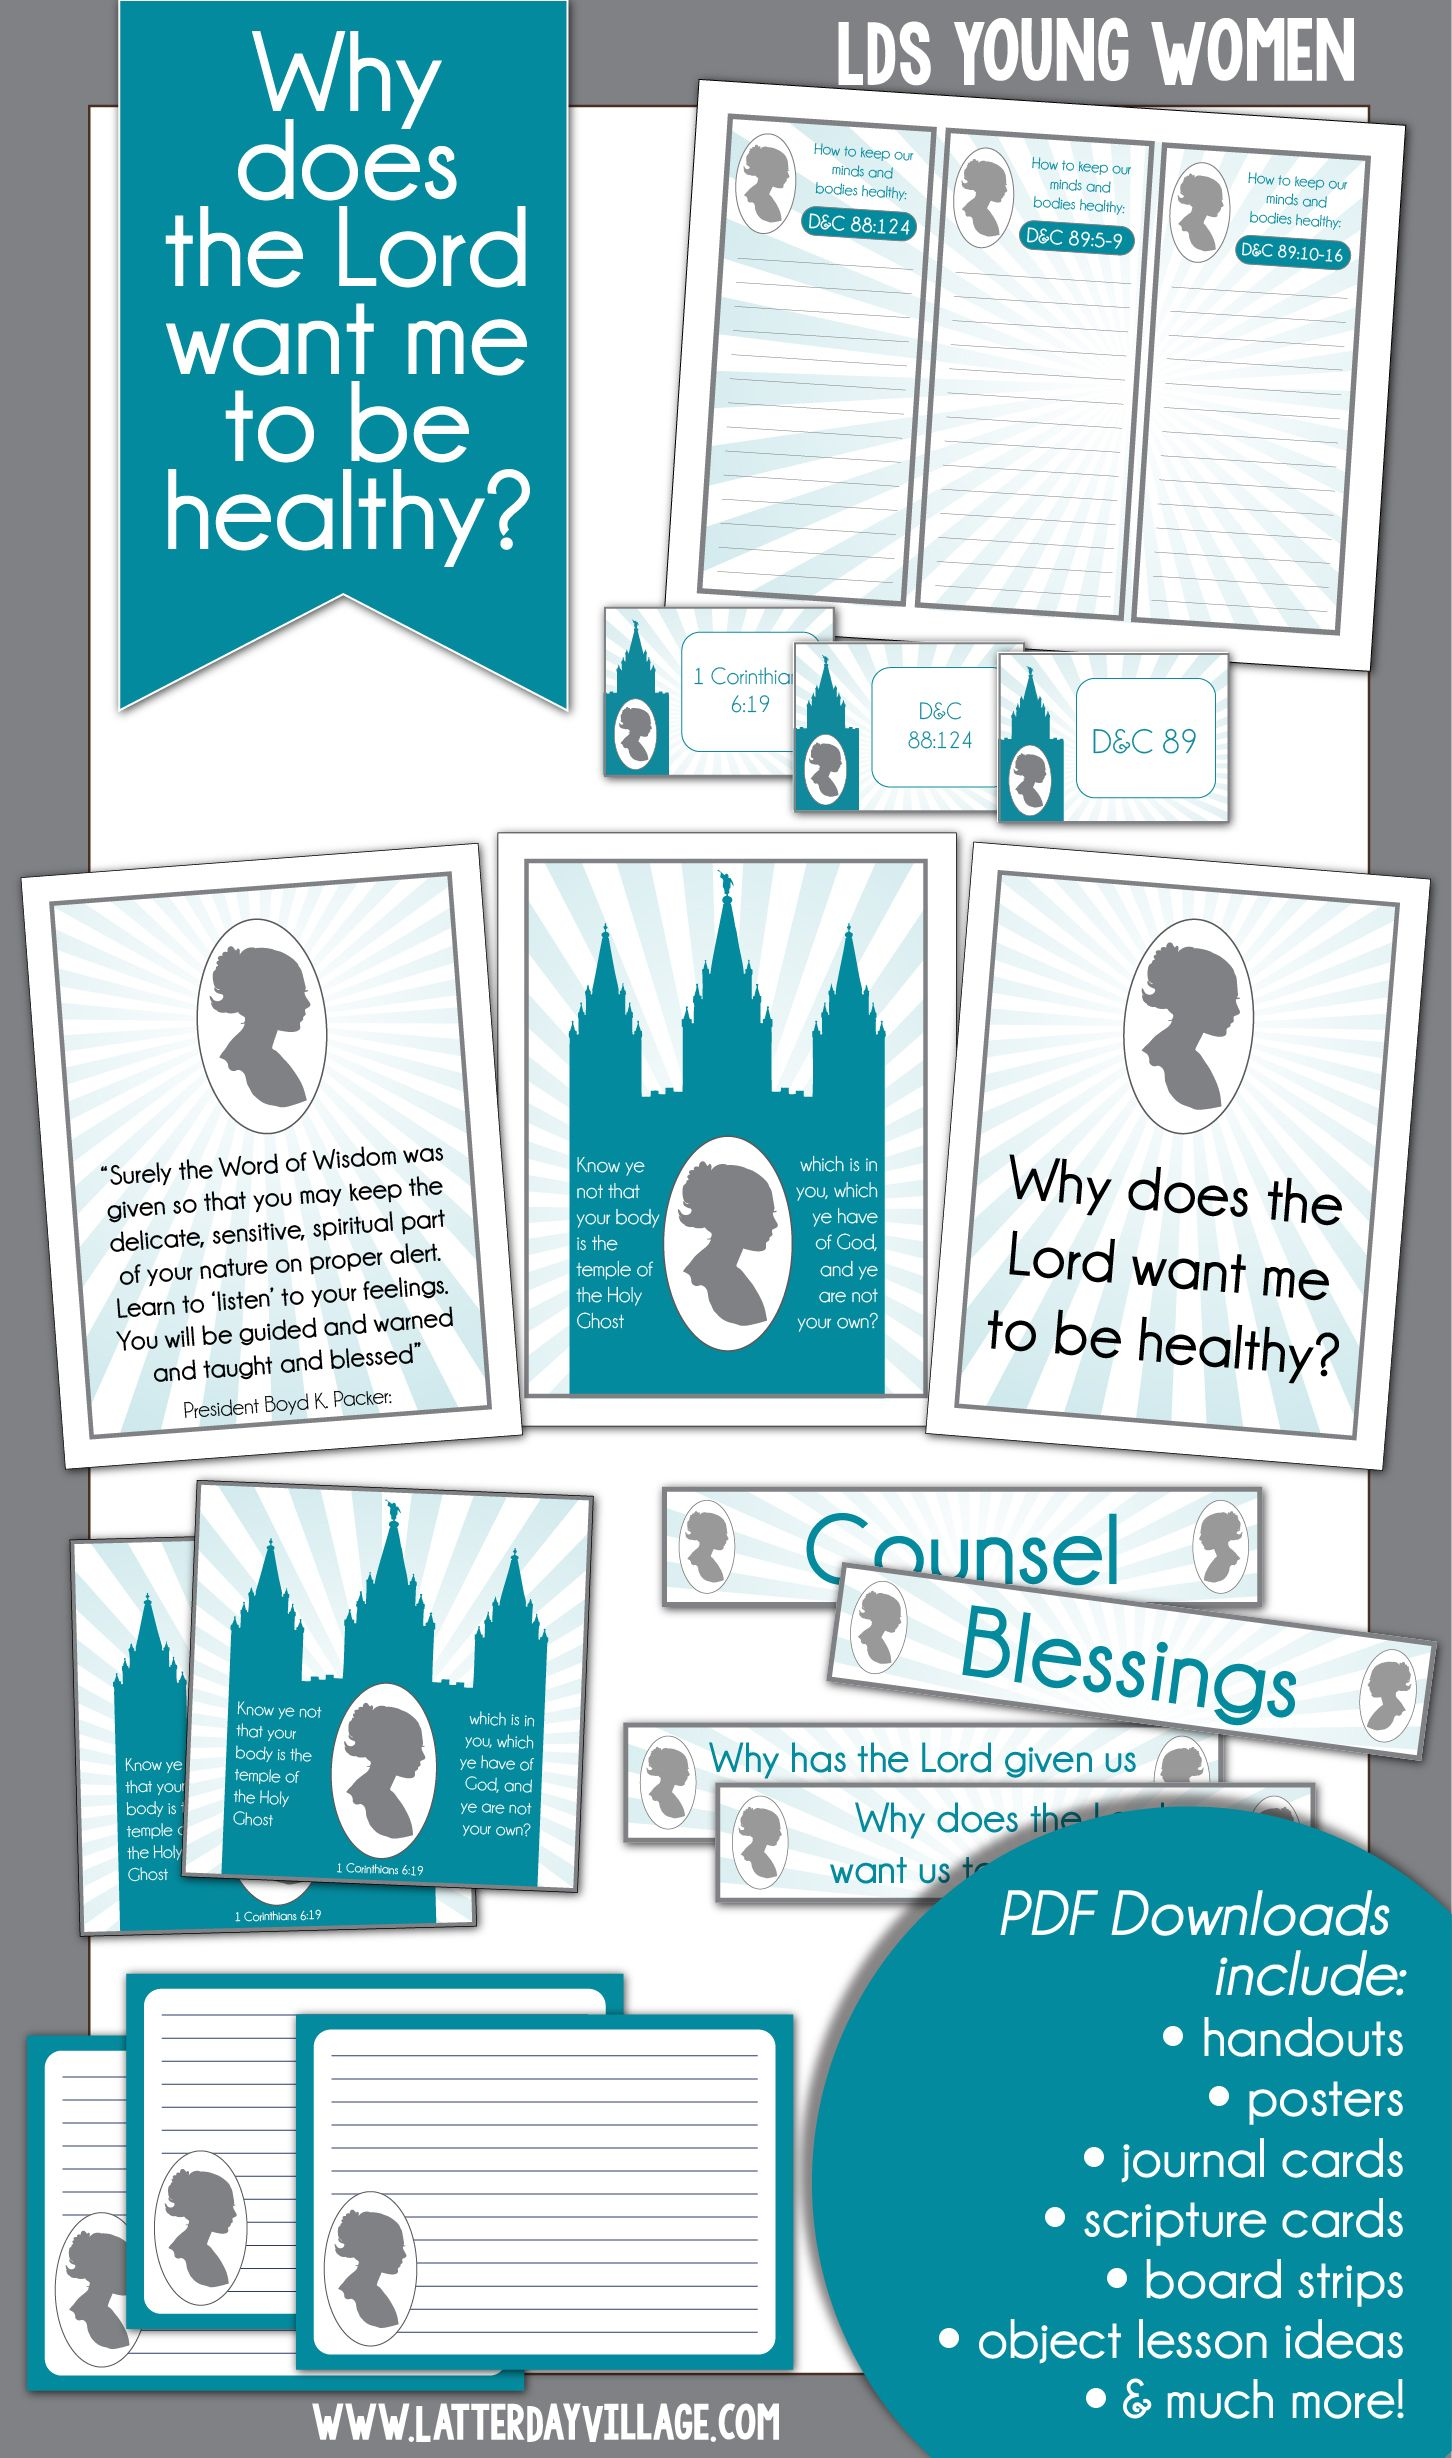 November Lds Young Women Lesson Helps Why Does The Lord Want Me To Be Healthy Handouts